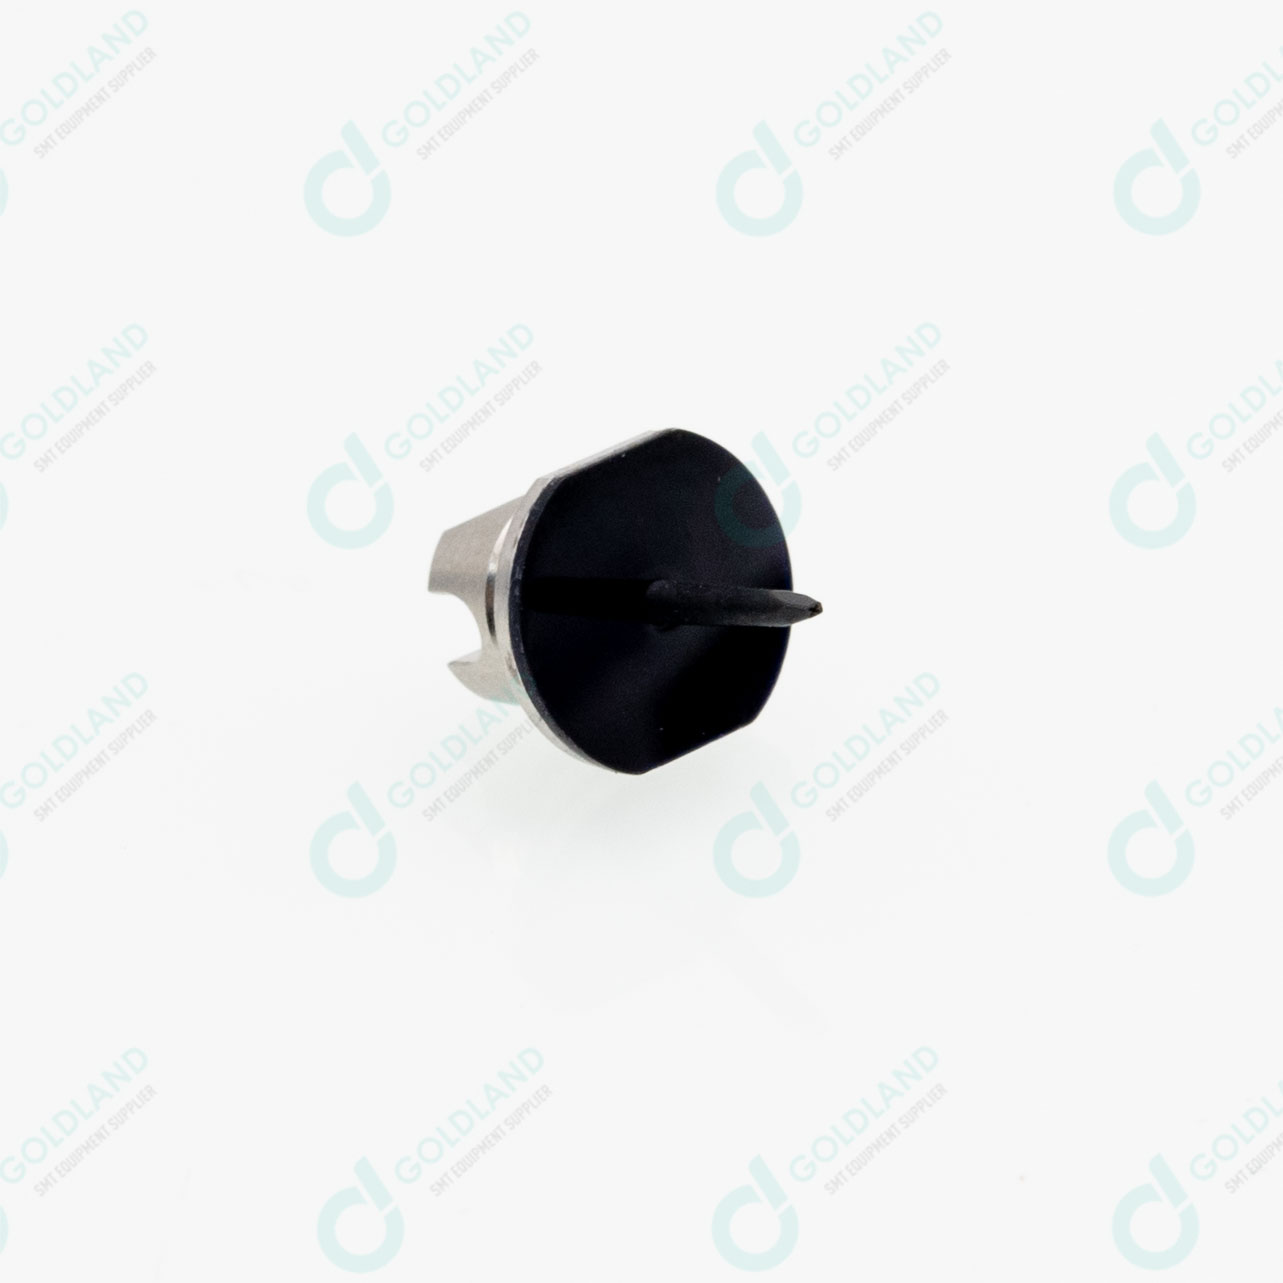 N610040786 Panasonic 225CS Nozzle for Panasonic smt machine parts